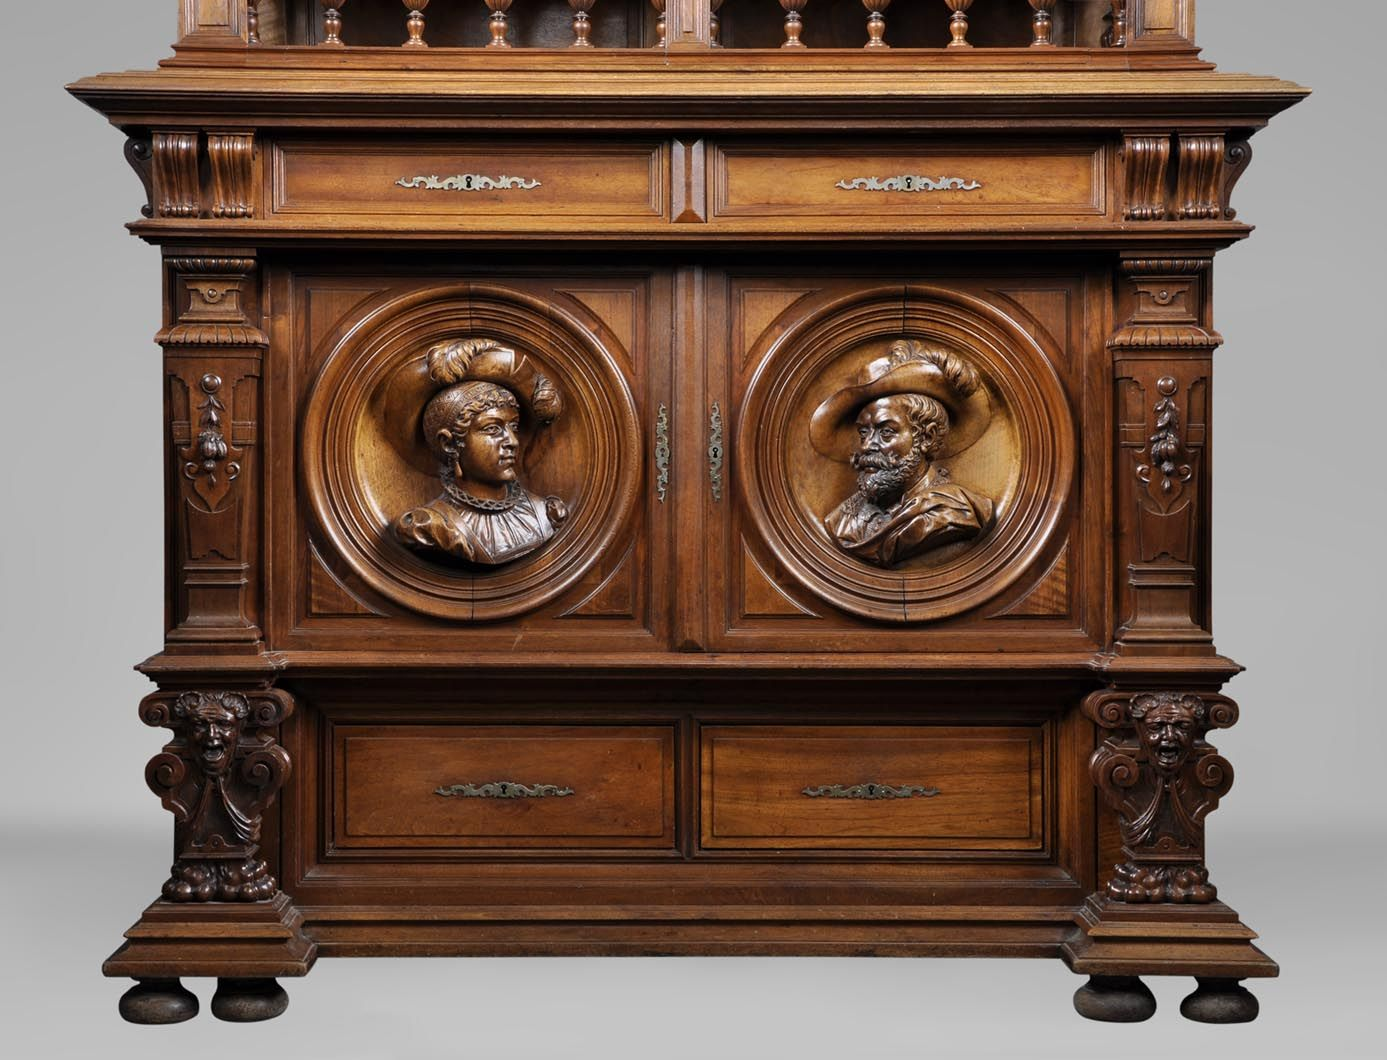 Antique Henri II style carved walnut buffet with costumed characters